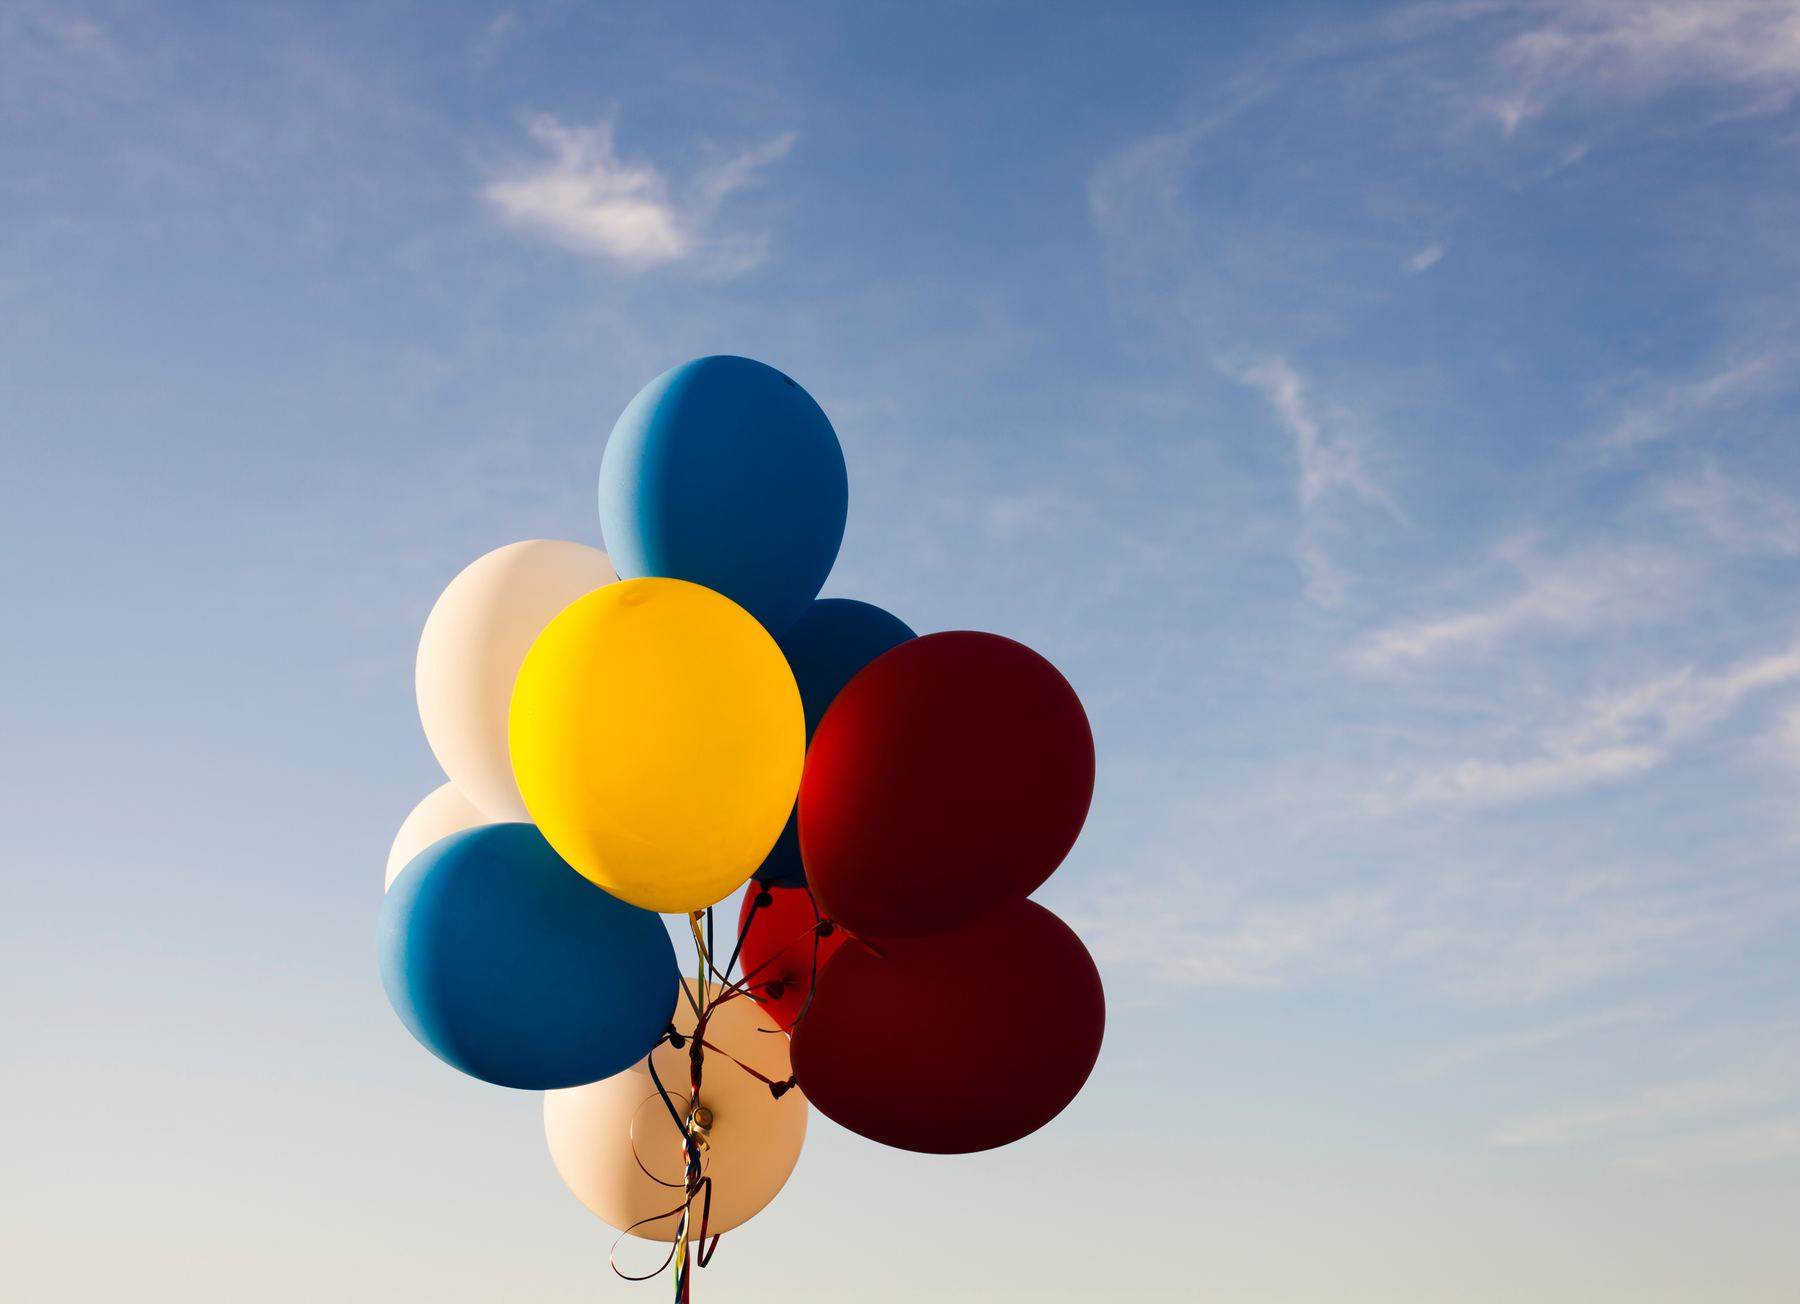 Several blue, red, yellow and white balloons against a cloudy sky.